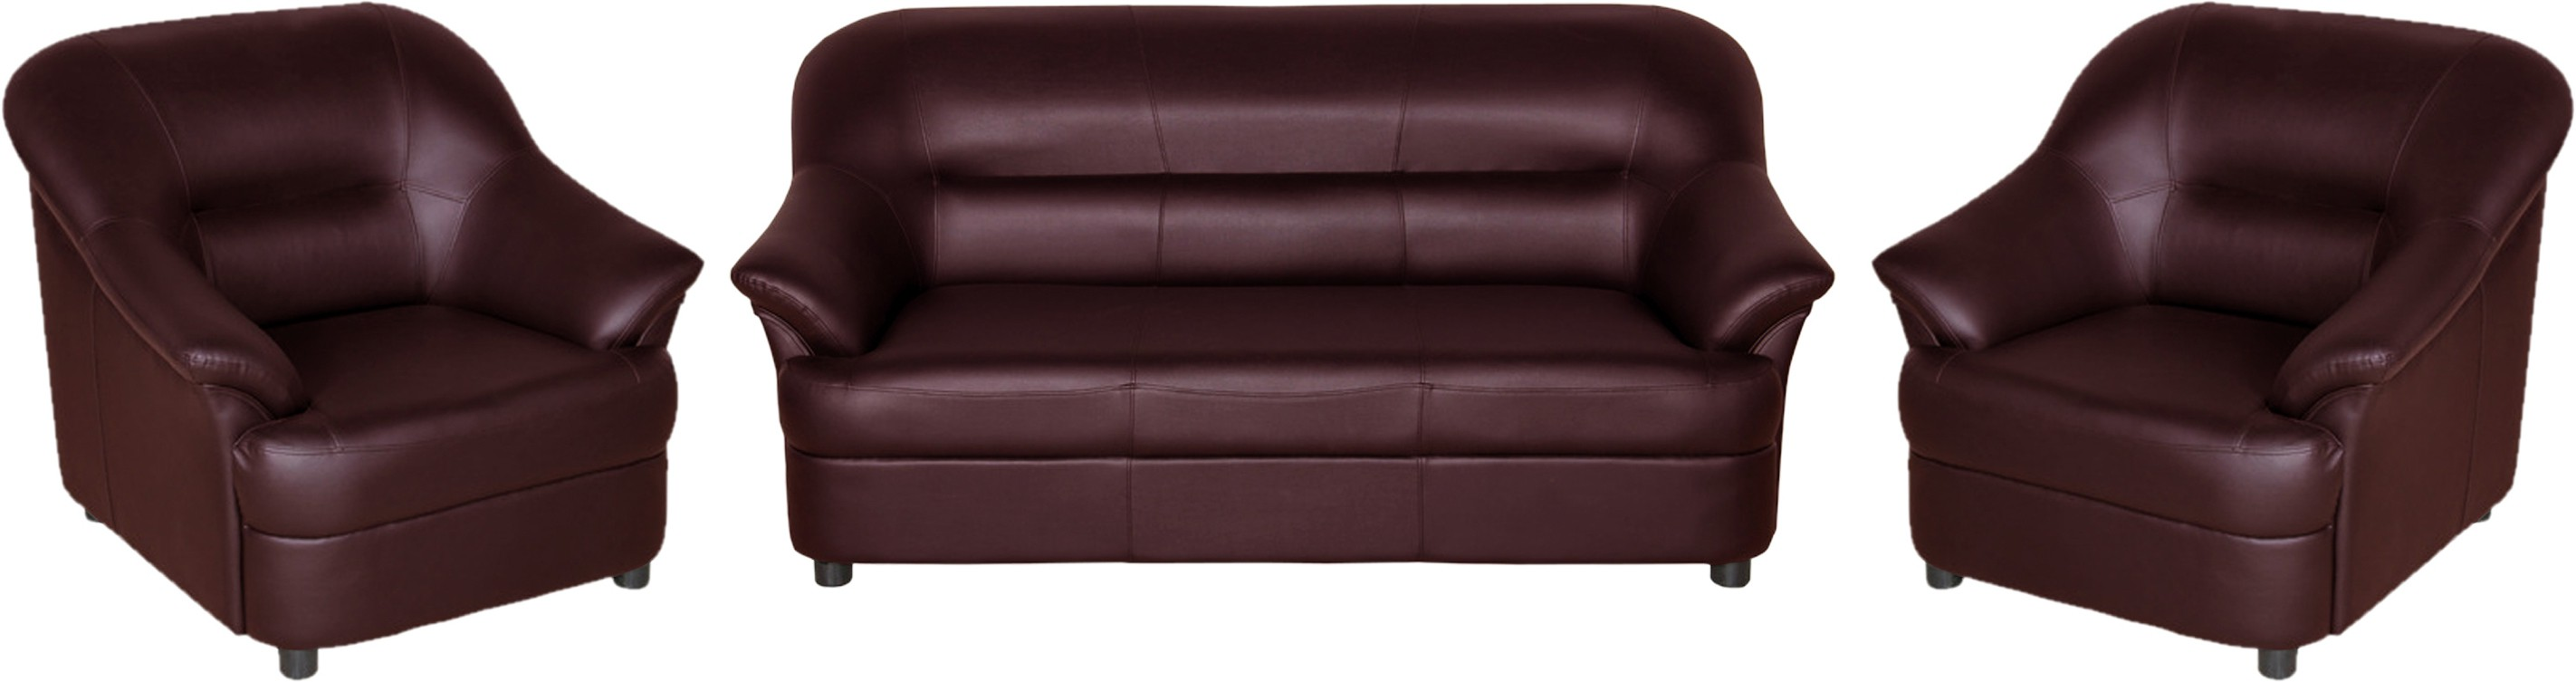 View Sethu Furniture Fabric 3 + 1 + 1 Brown Sofa Set(Configuration - Straight) Furniture (Sethu Furniture)